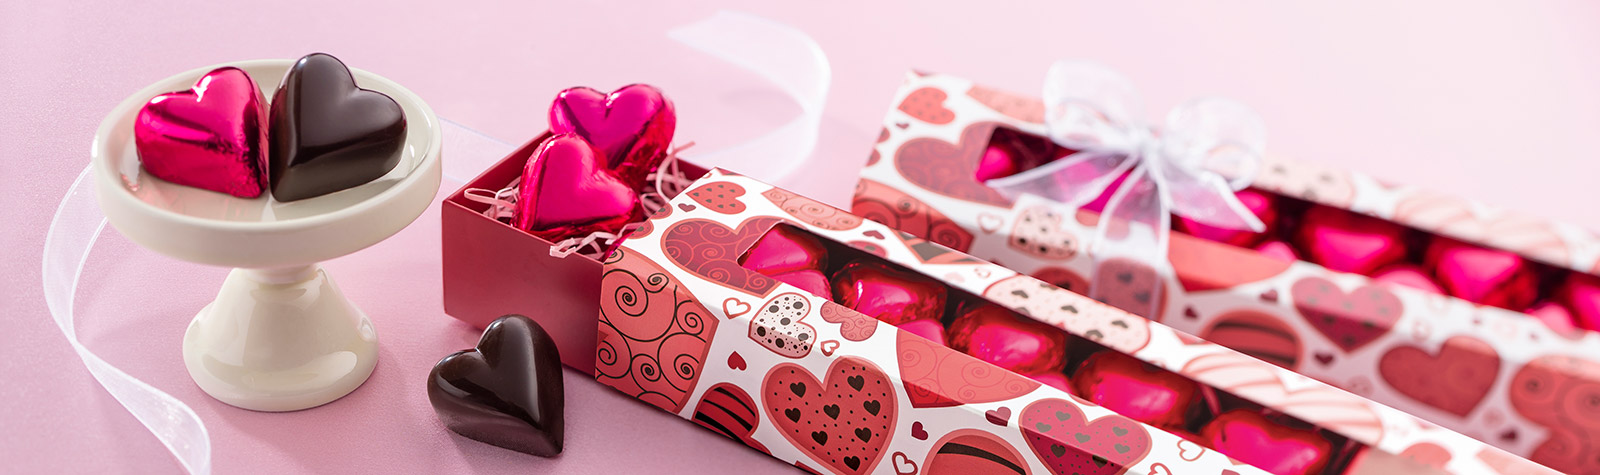 Heart Box Assortments